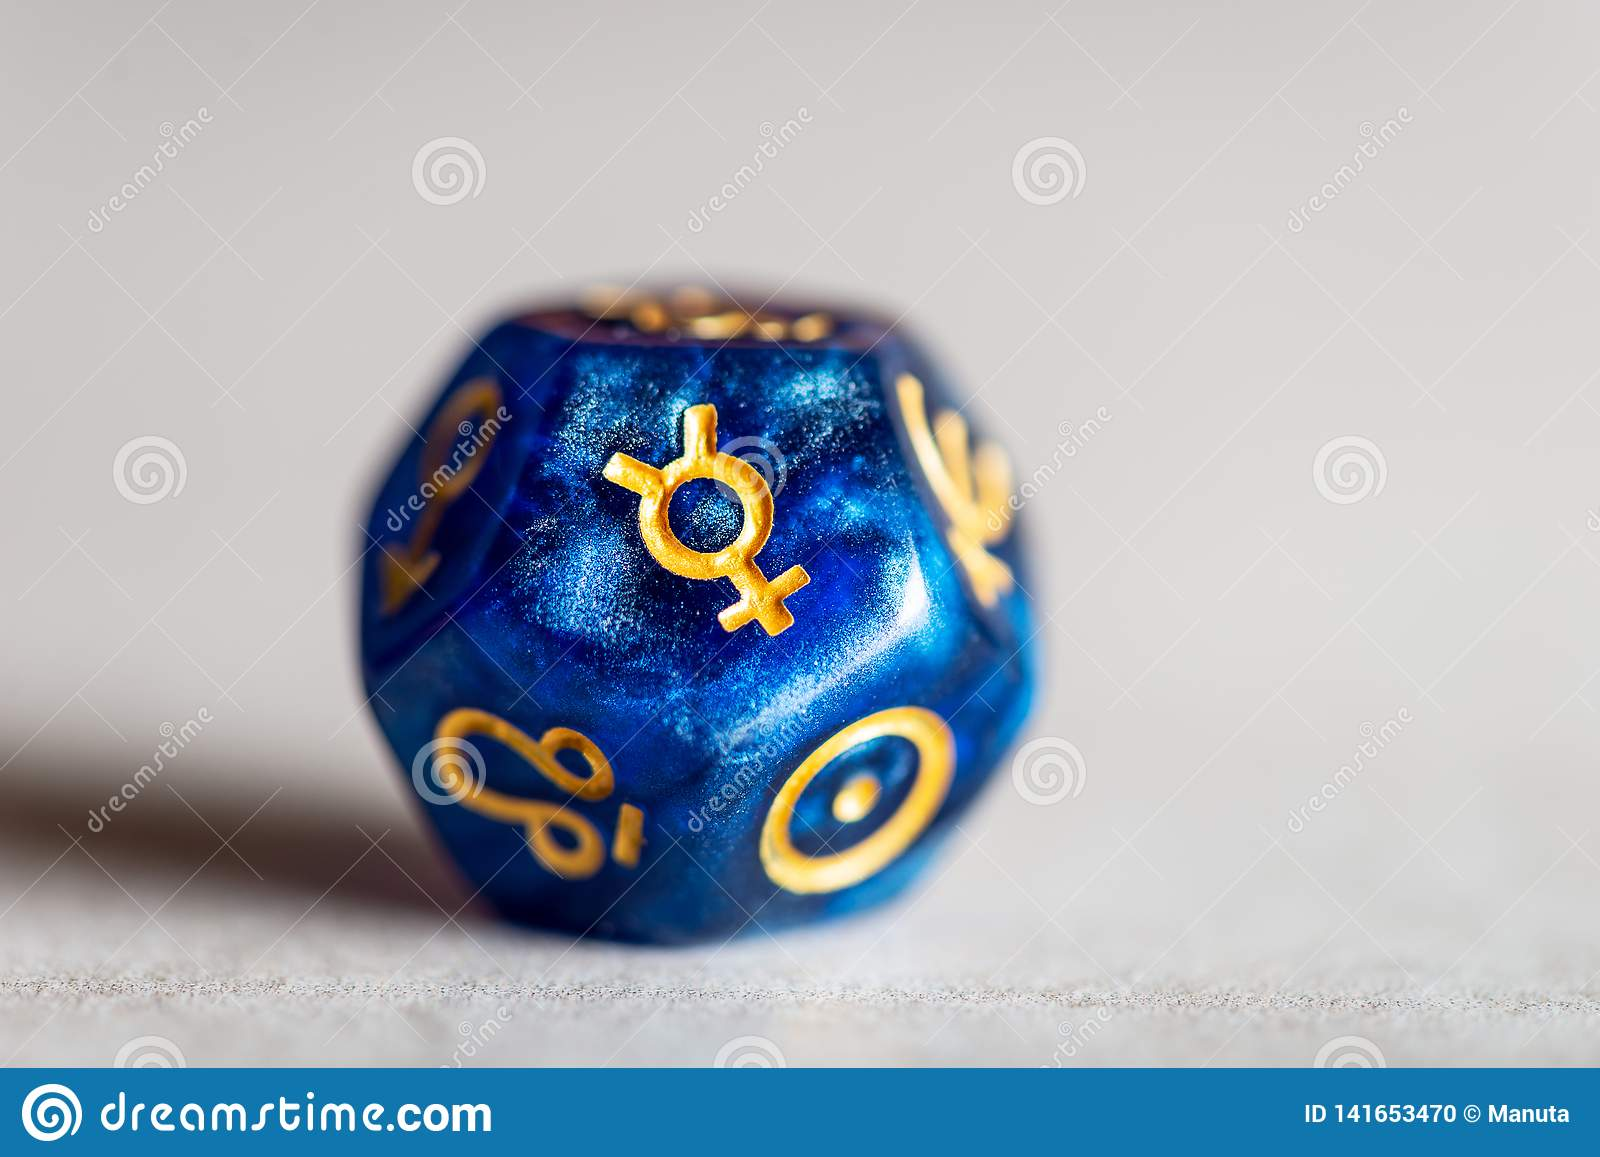 Astrology Dice with symbol of the planet Mercury